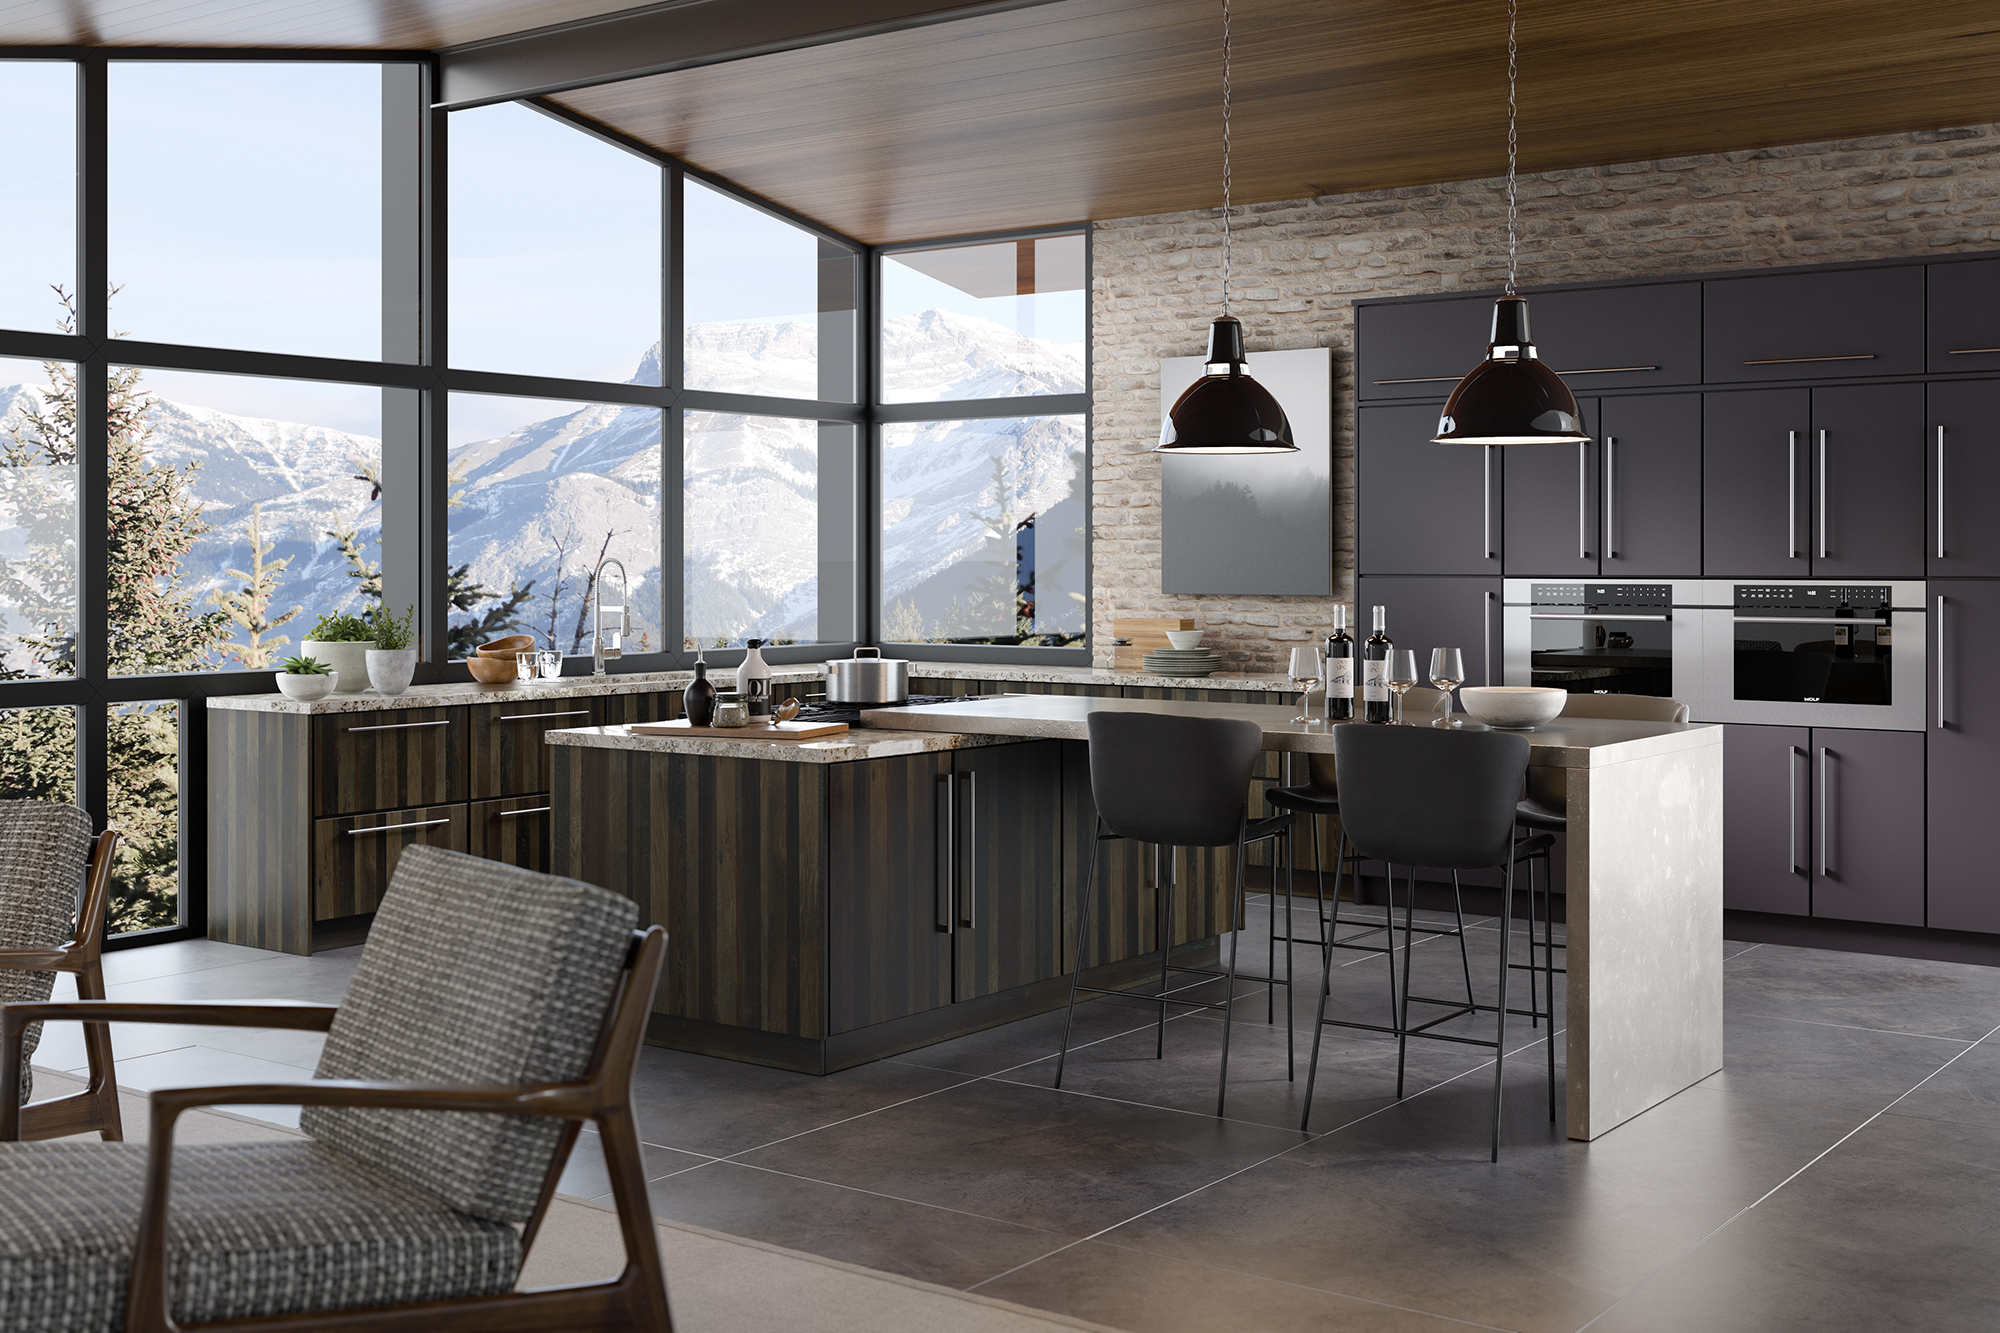 Slab style kitchen cabinets with mountain view in Papa's Loft textured melamine and Gauntlet Gray foil by ShowplaceEVO view 1